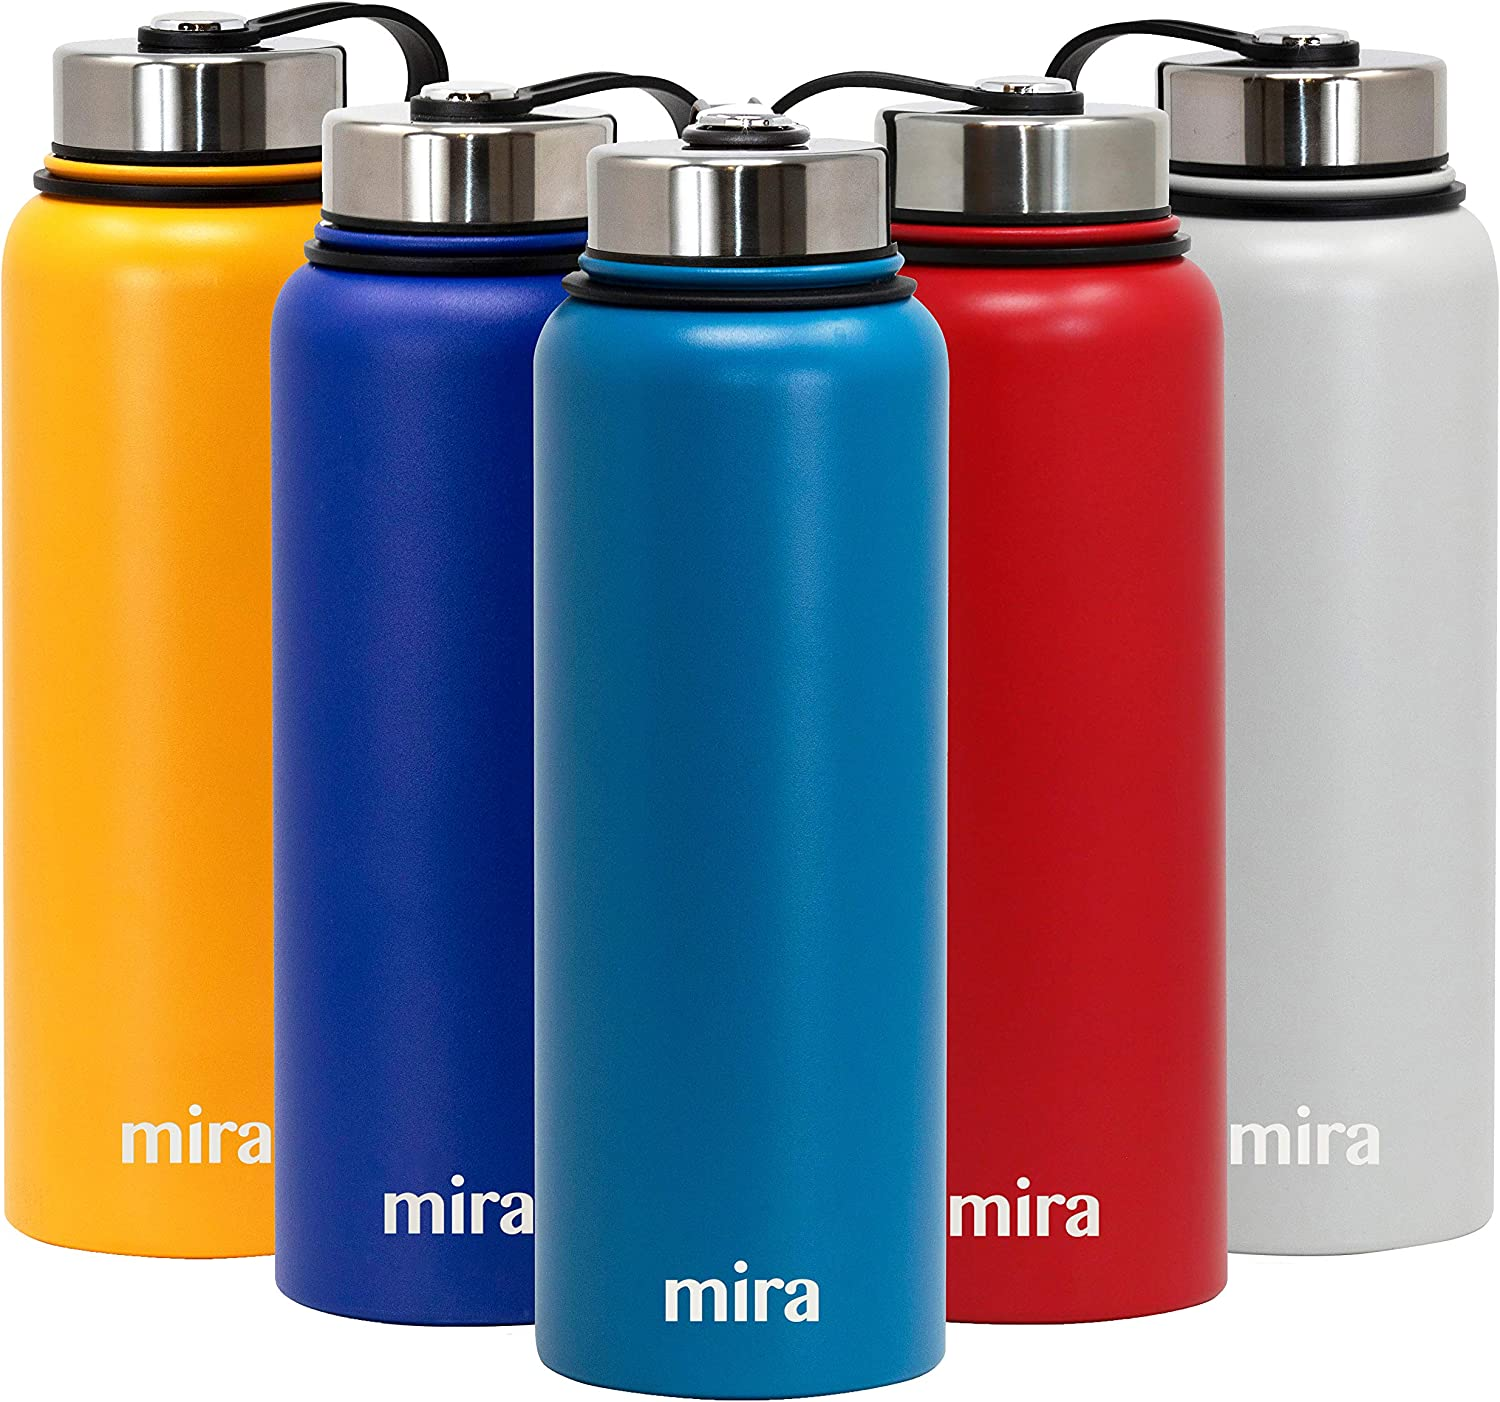 MIRA 40 oz Stainless Steel Vacuum Insulated Wide Mouth Water Bottle - Thermos Keeps Cold for 24 hours, Hot for 12 hours - Double Walled Hydro Travel Flask - Hawaiian Blue